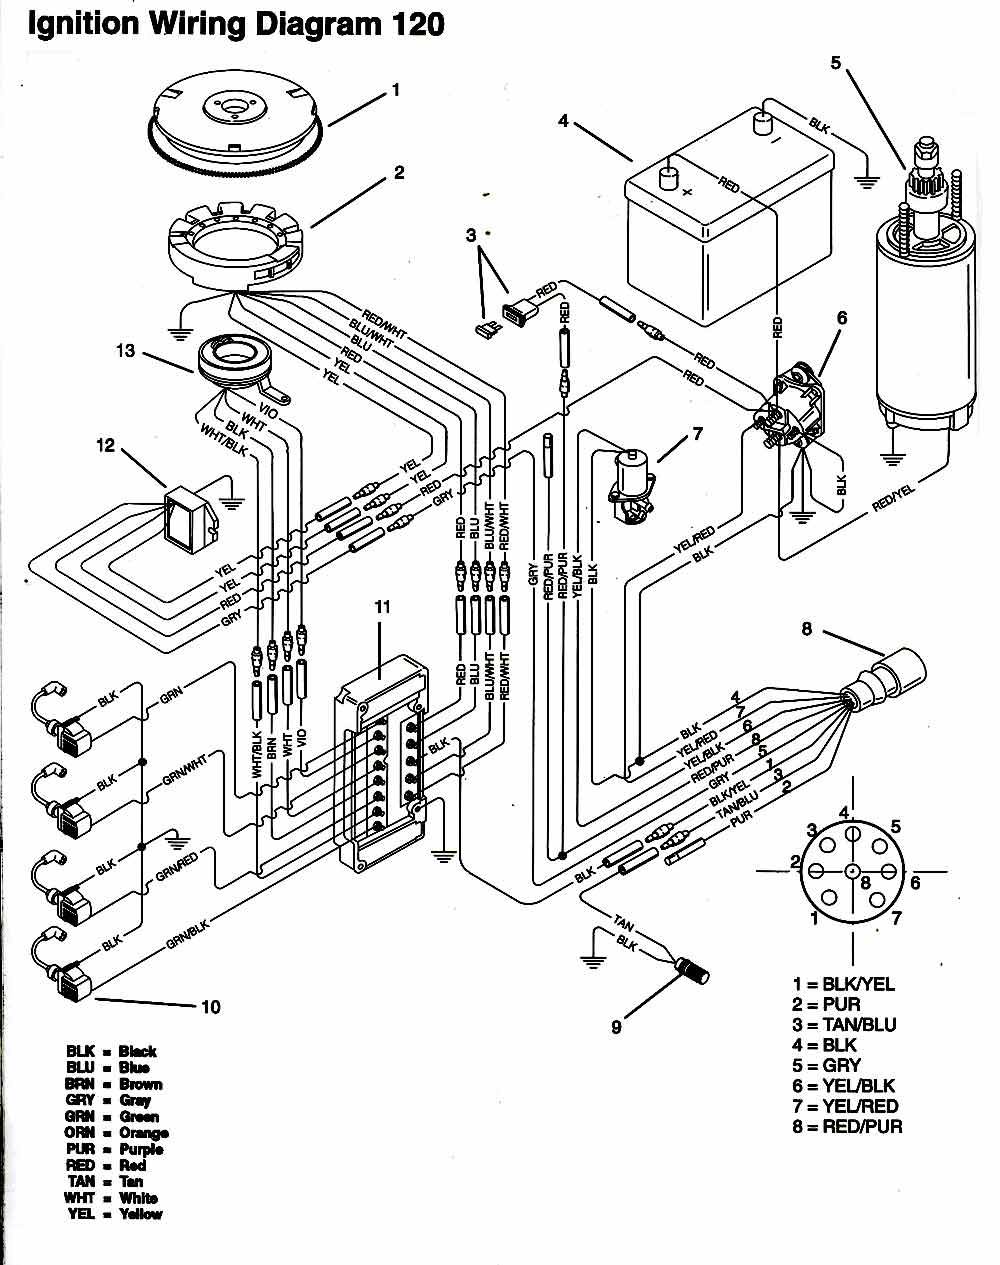 99 yamaha outboard wiring best part of wiring diagramwiring diagram yamaha outboard save foneplanet de \